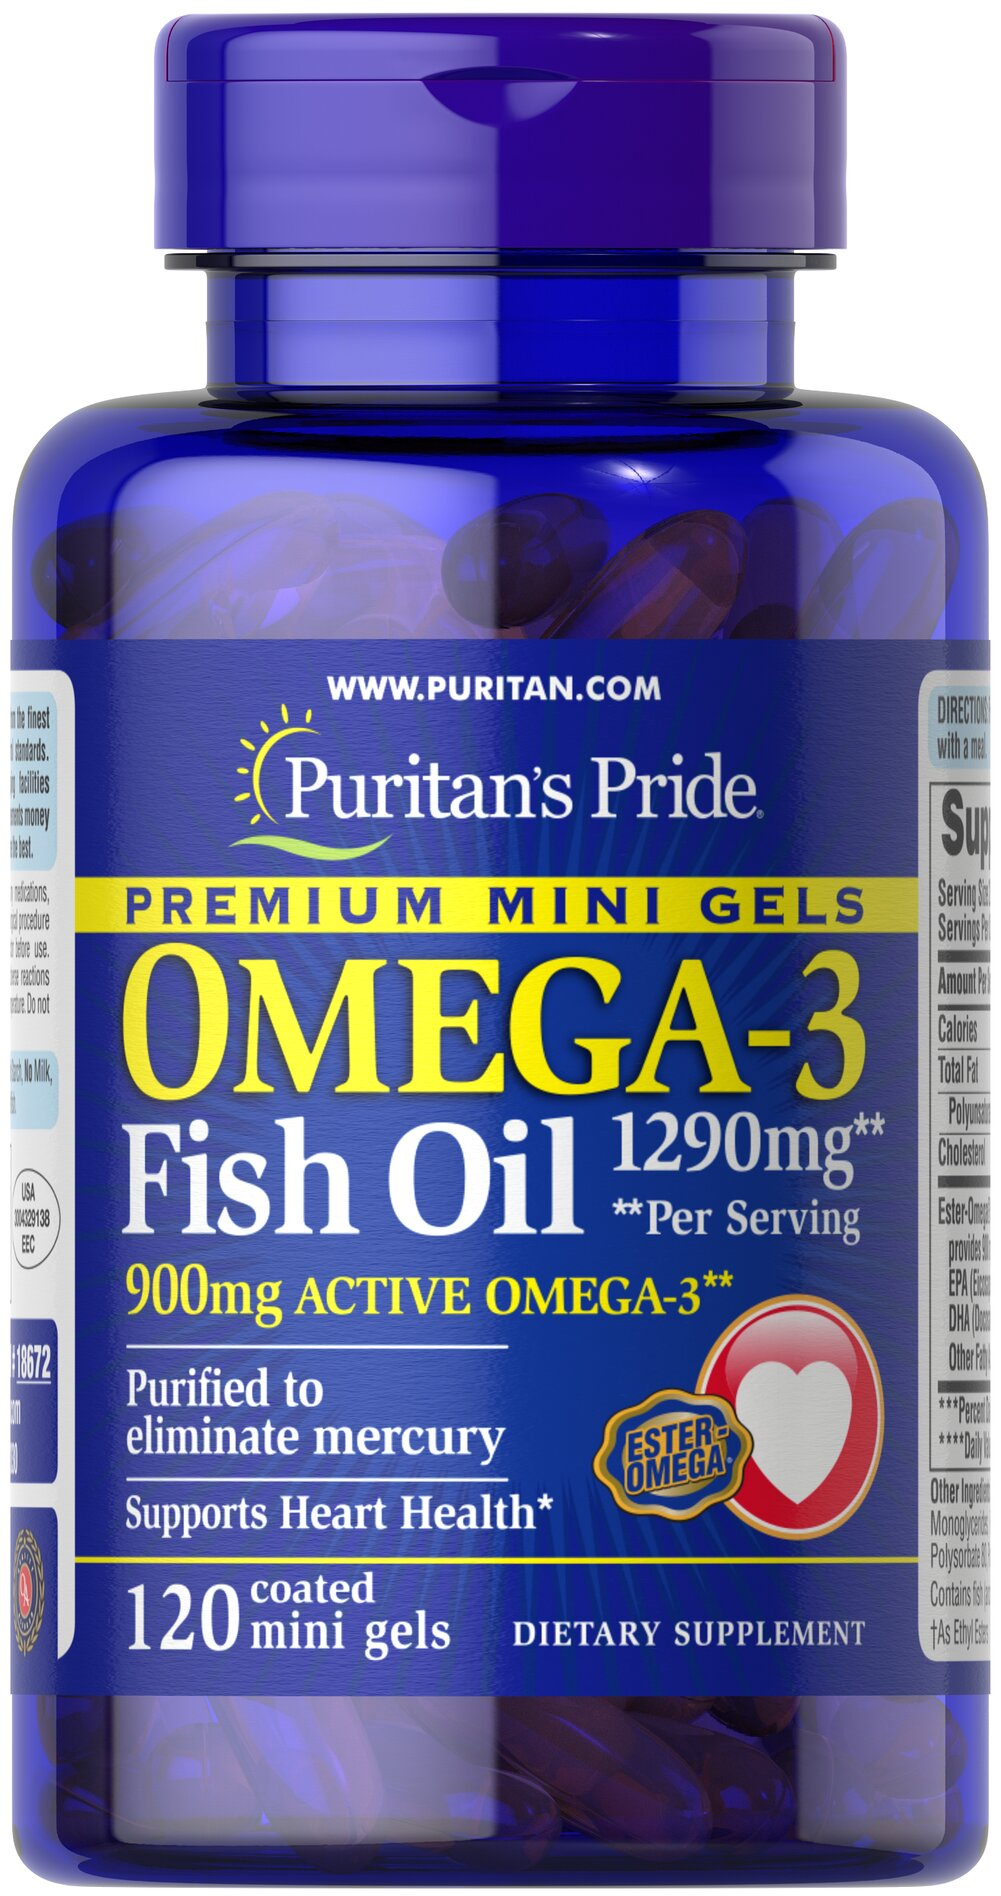 Fish Oil Mini Gels 645 mg <p><b>Purified to Eliminate Mercury</b></p><p>Enhanced with 900 mg of active Omega-3 per serving</p>    <p>Mercury free mini gels are coated to prevent fishy aftertaste</p> 120 Coated Softgels 645 mg $39.99